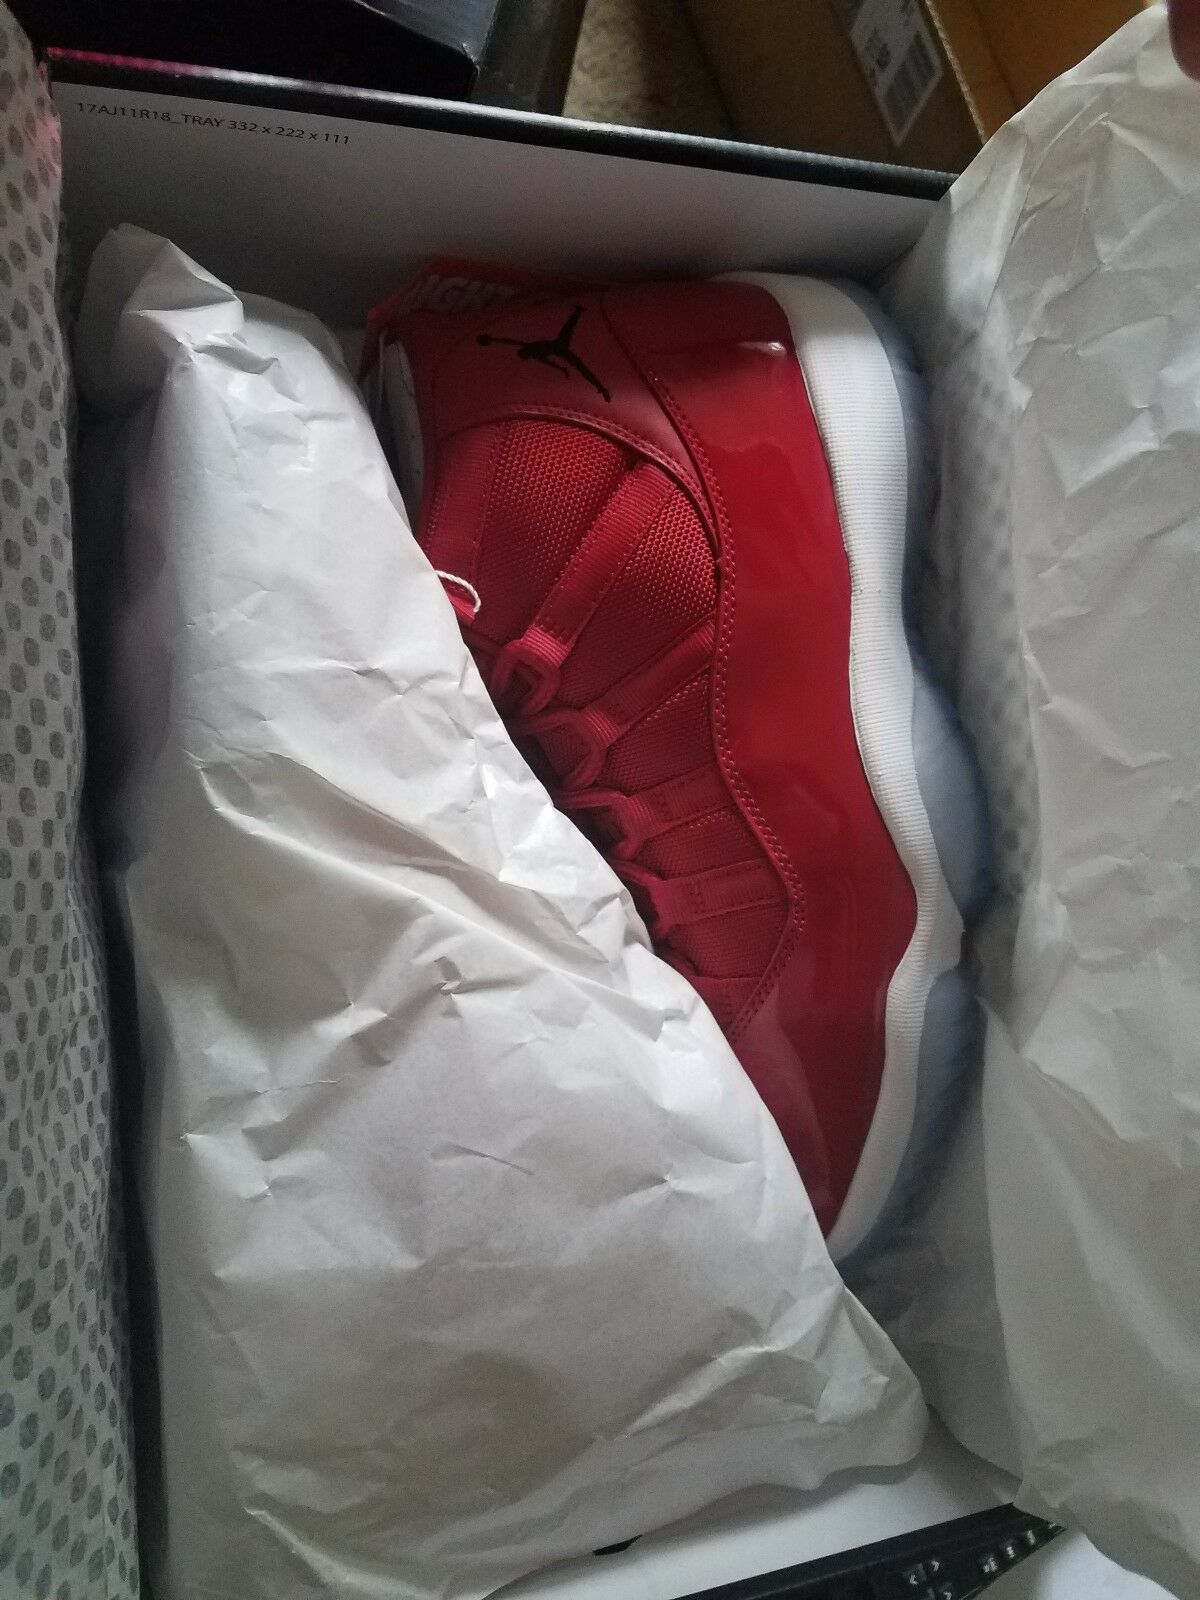 AIR JORDAN 11 XI WIN LIKE 96 SIZE 8 MEN US RED NIKE BRAND NEW WITH TAGS AND BOX Brand discount